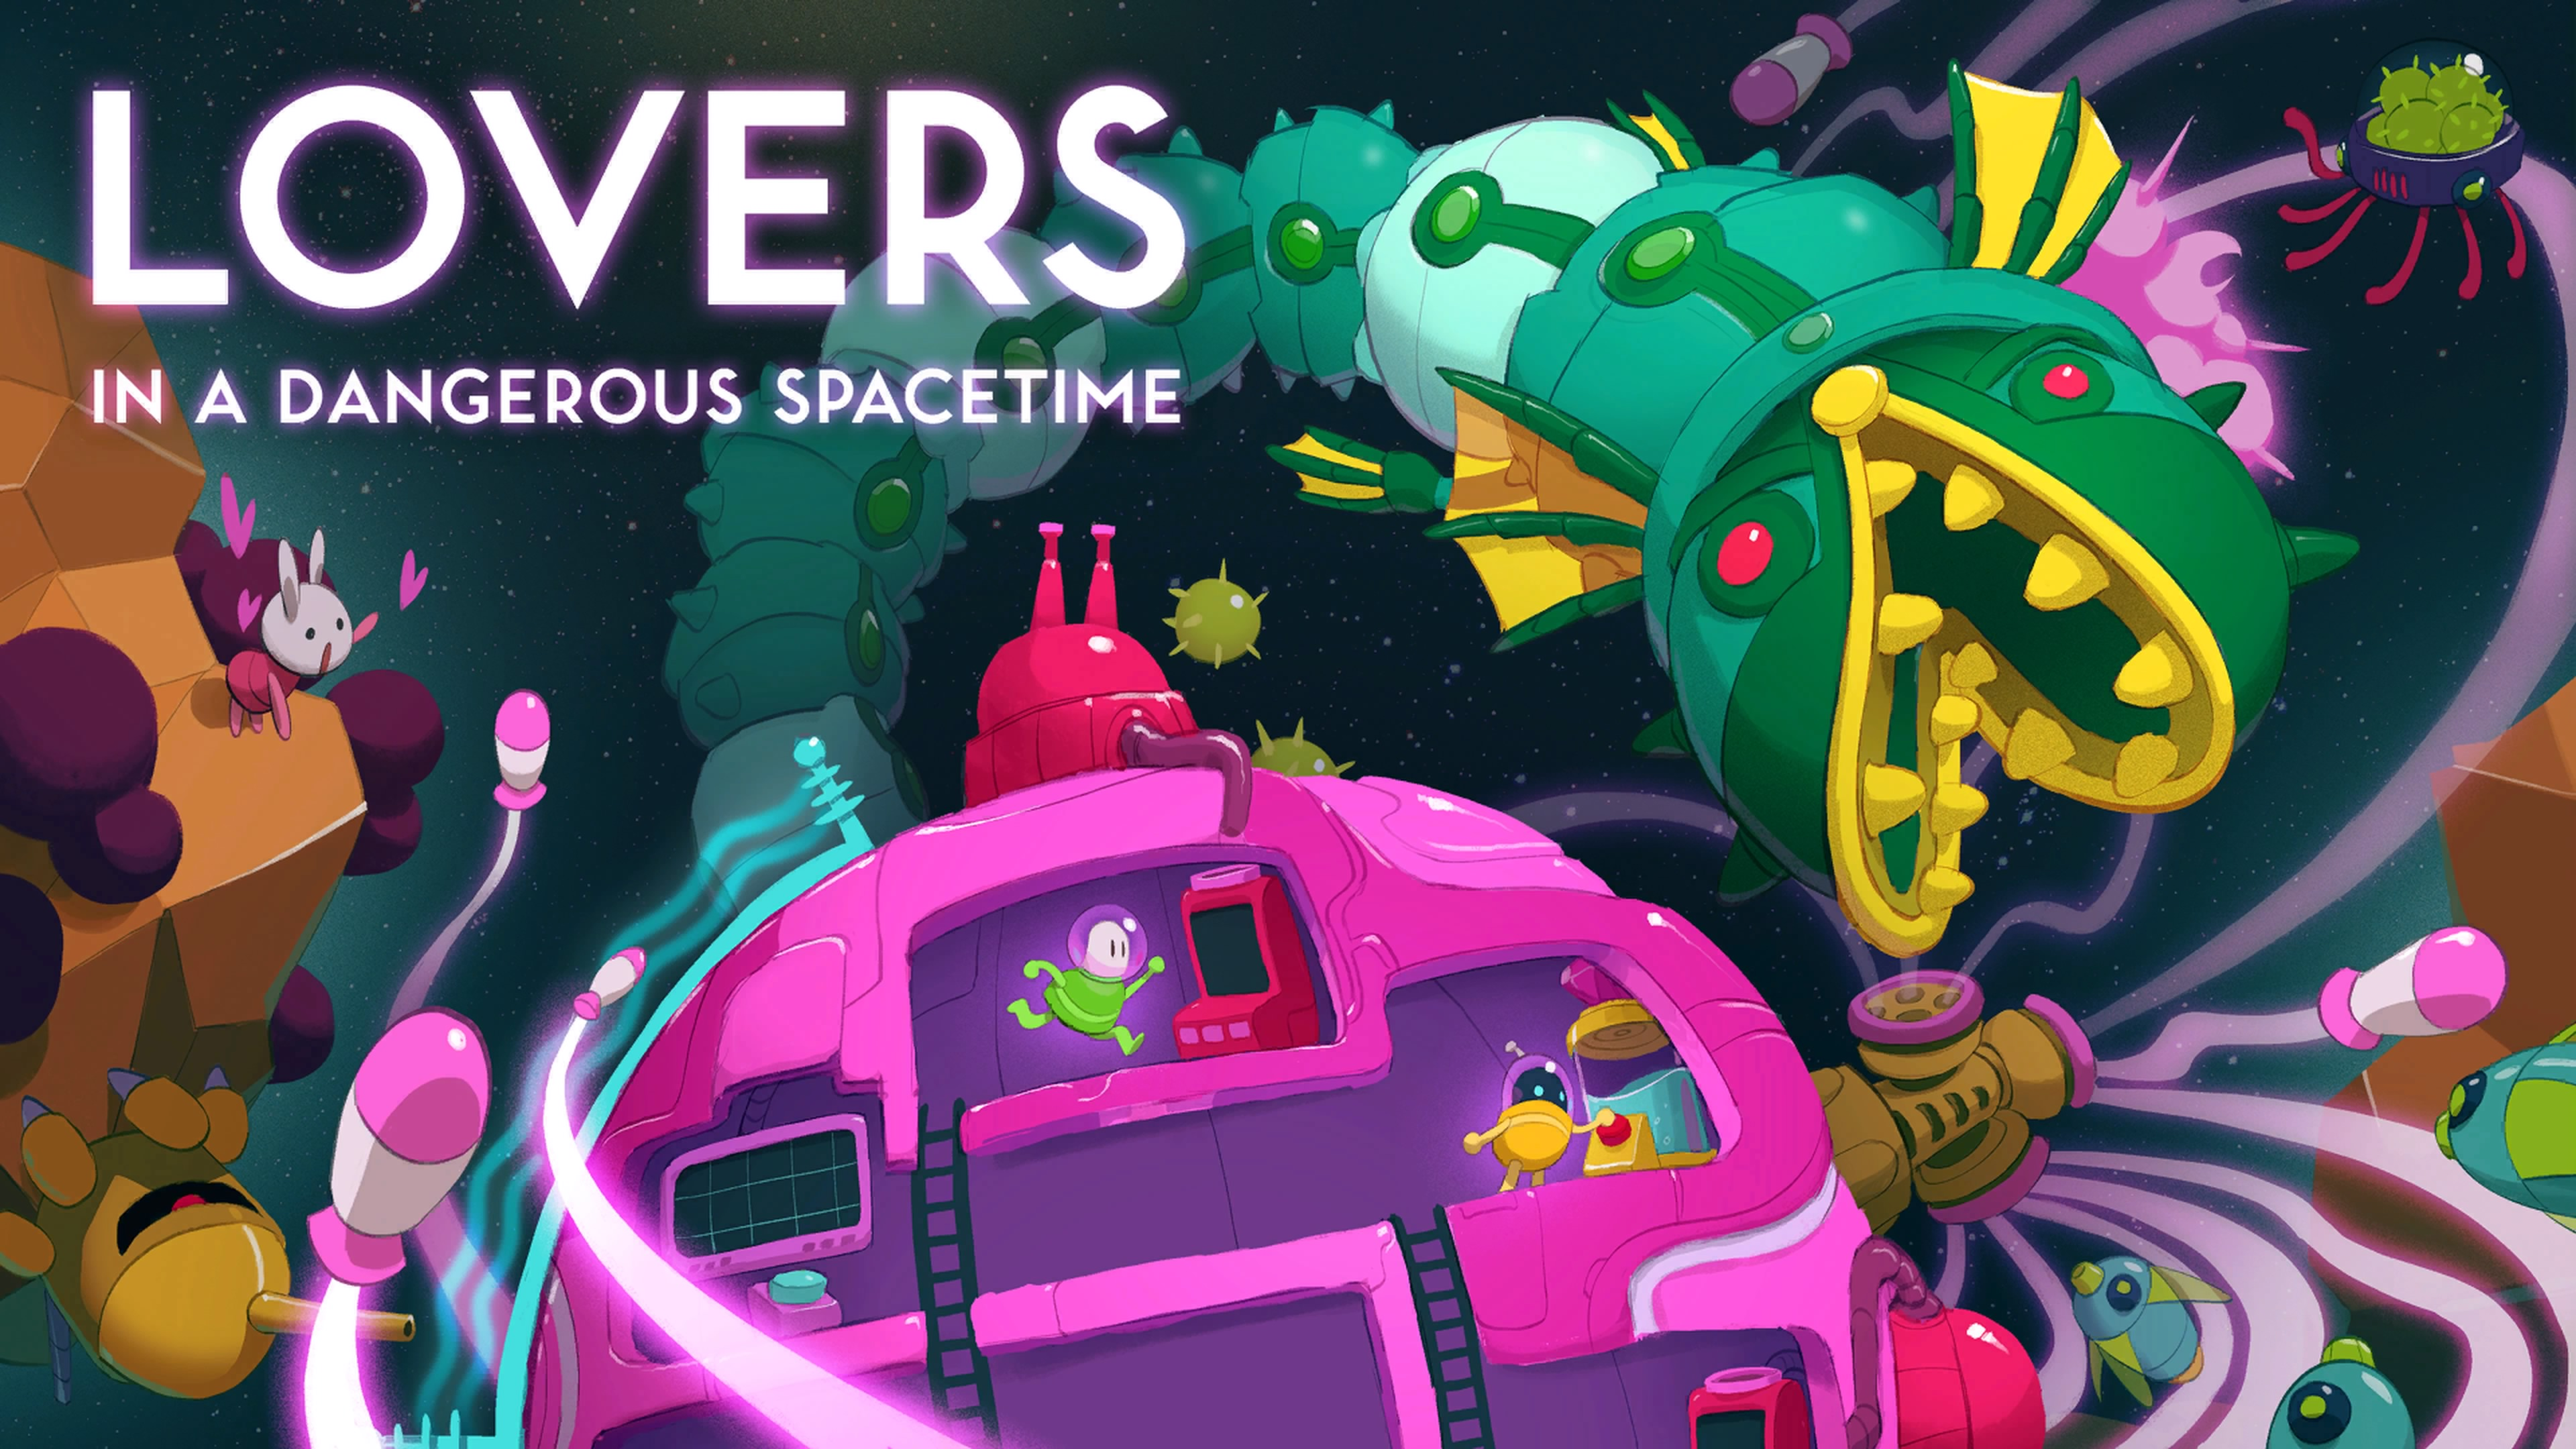 Lovers in a Dangerous Spacetime_20170407095042